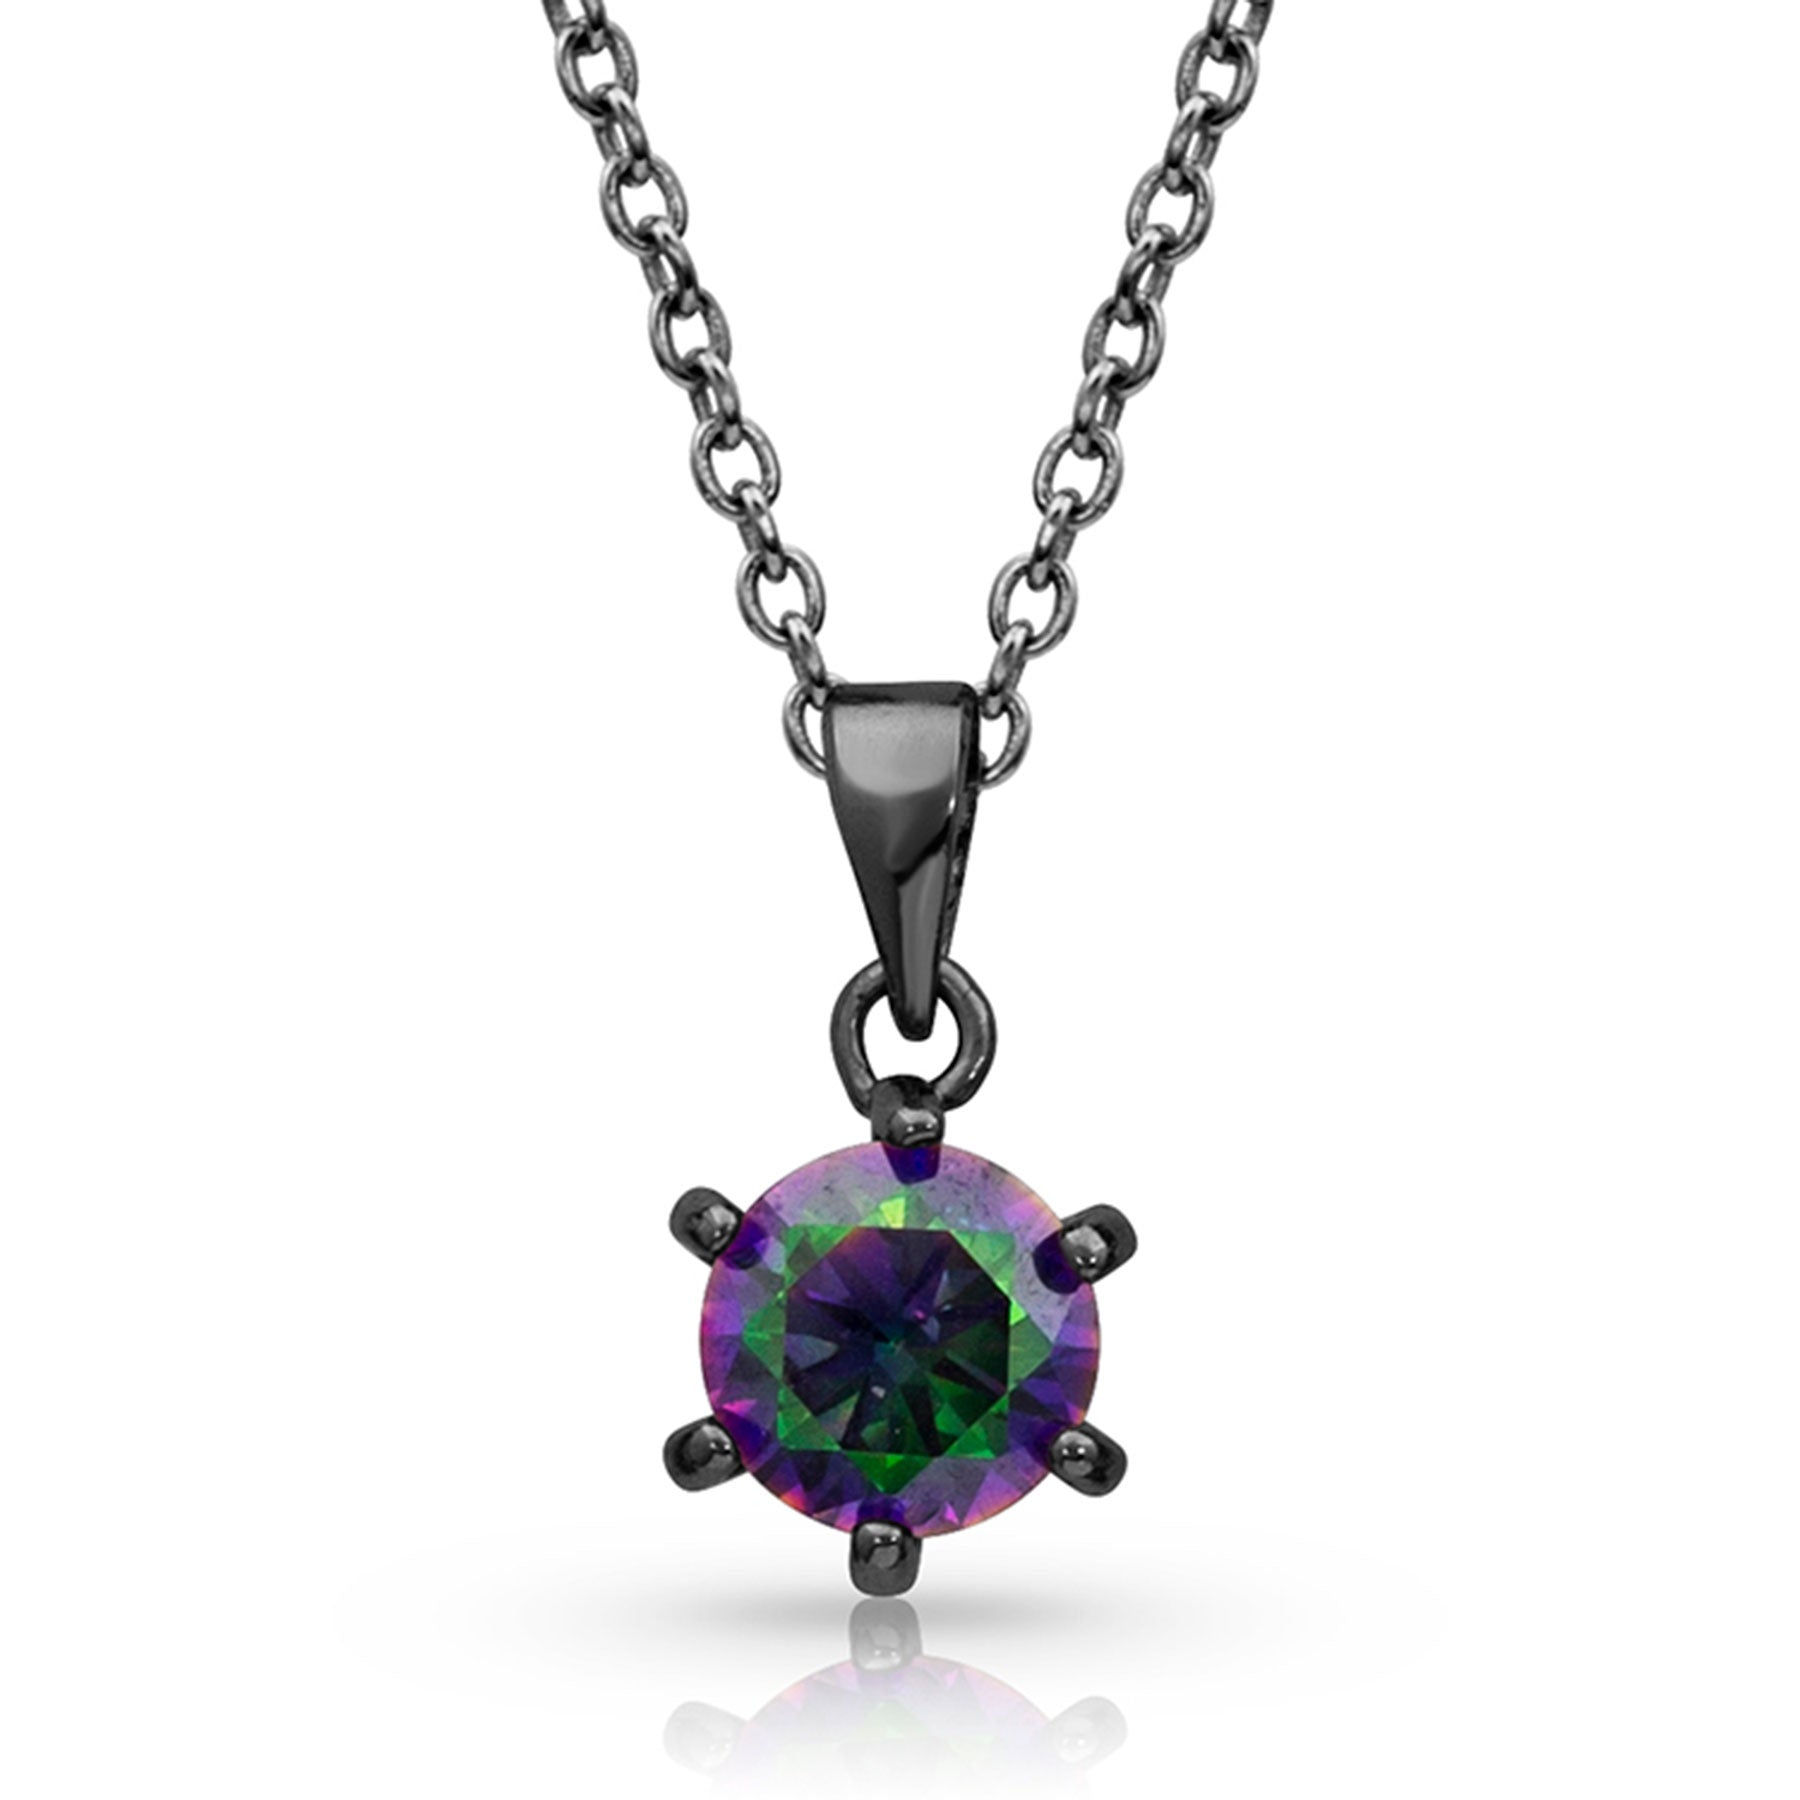 Montana Silver Northern Lights Solitaire Necklace